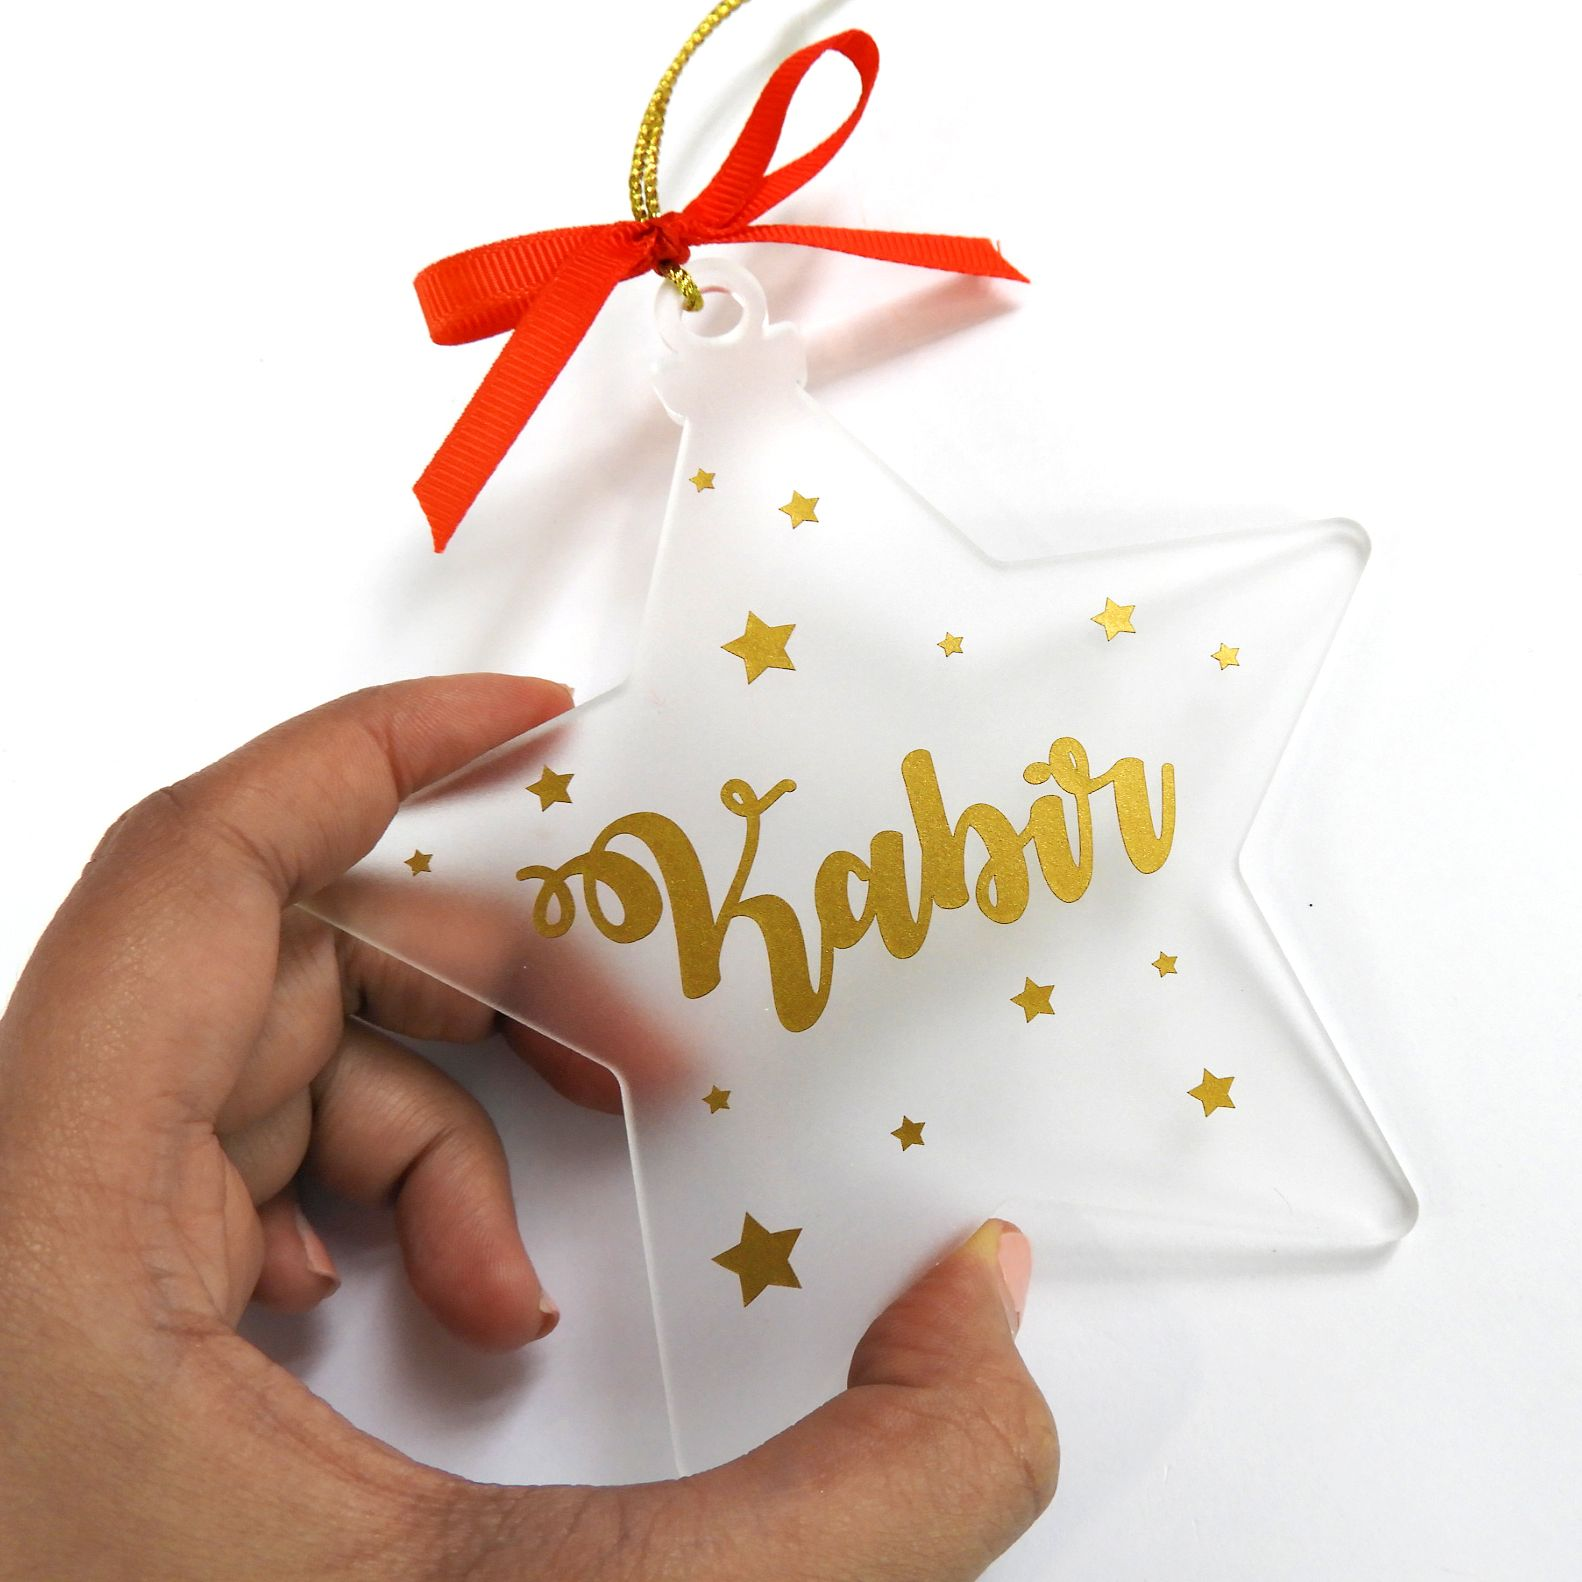 Personalised Star shaped frosted Christmas ornament | Christmas ornaments, Star ornament, Star shape